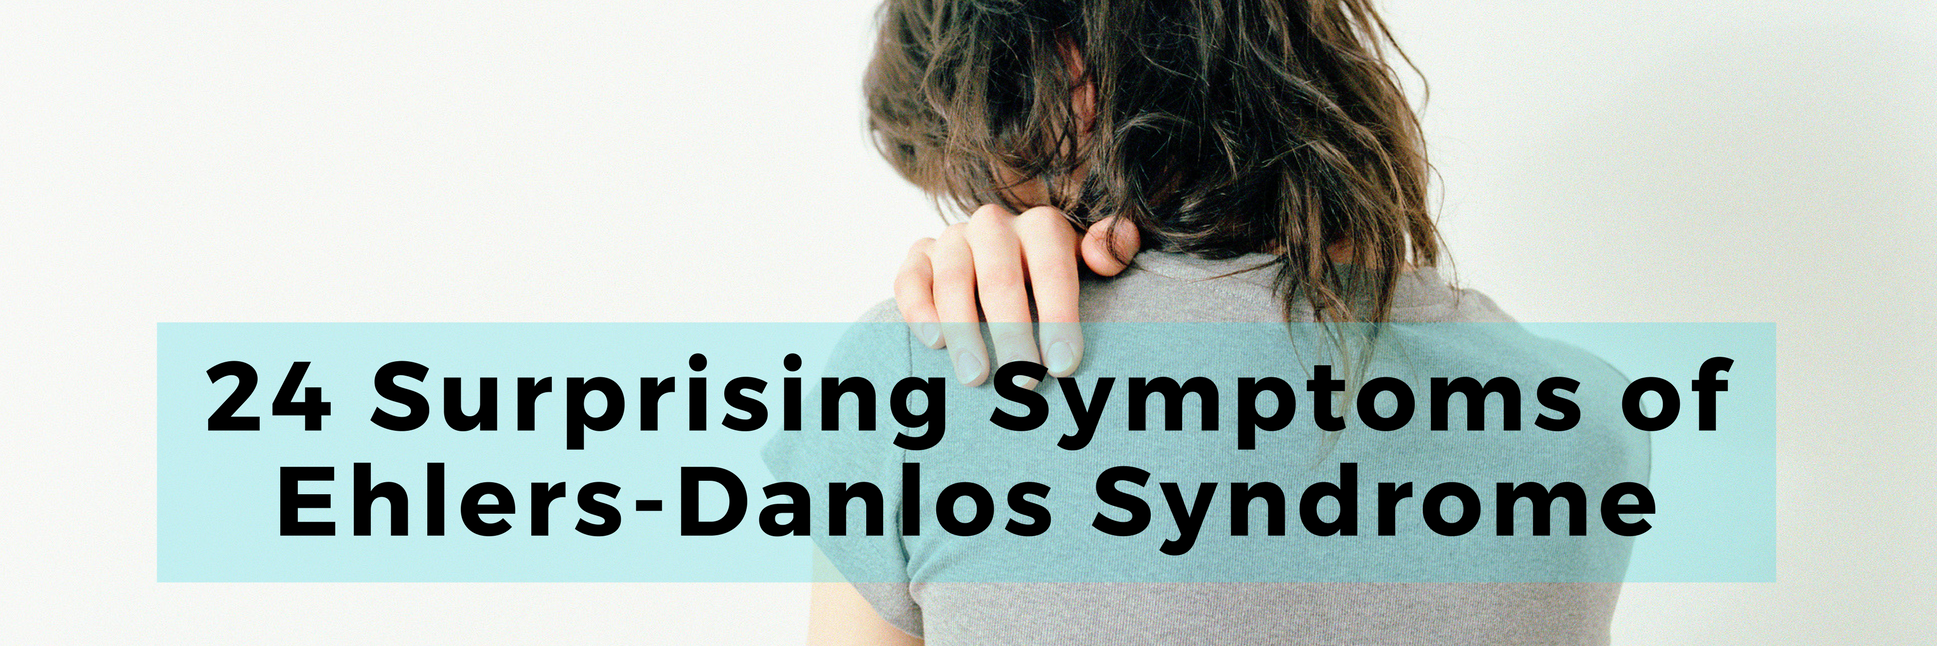 24 surprising symptoms of ehlers-danlos syndrome